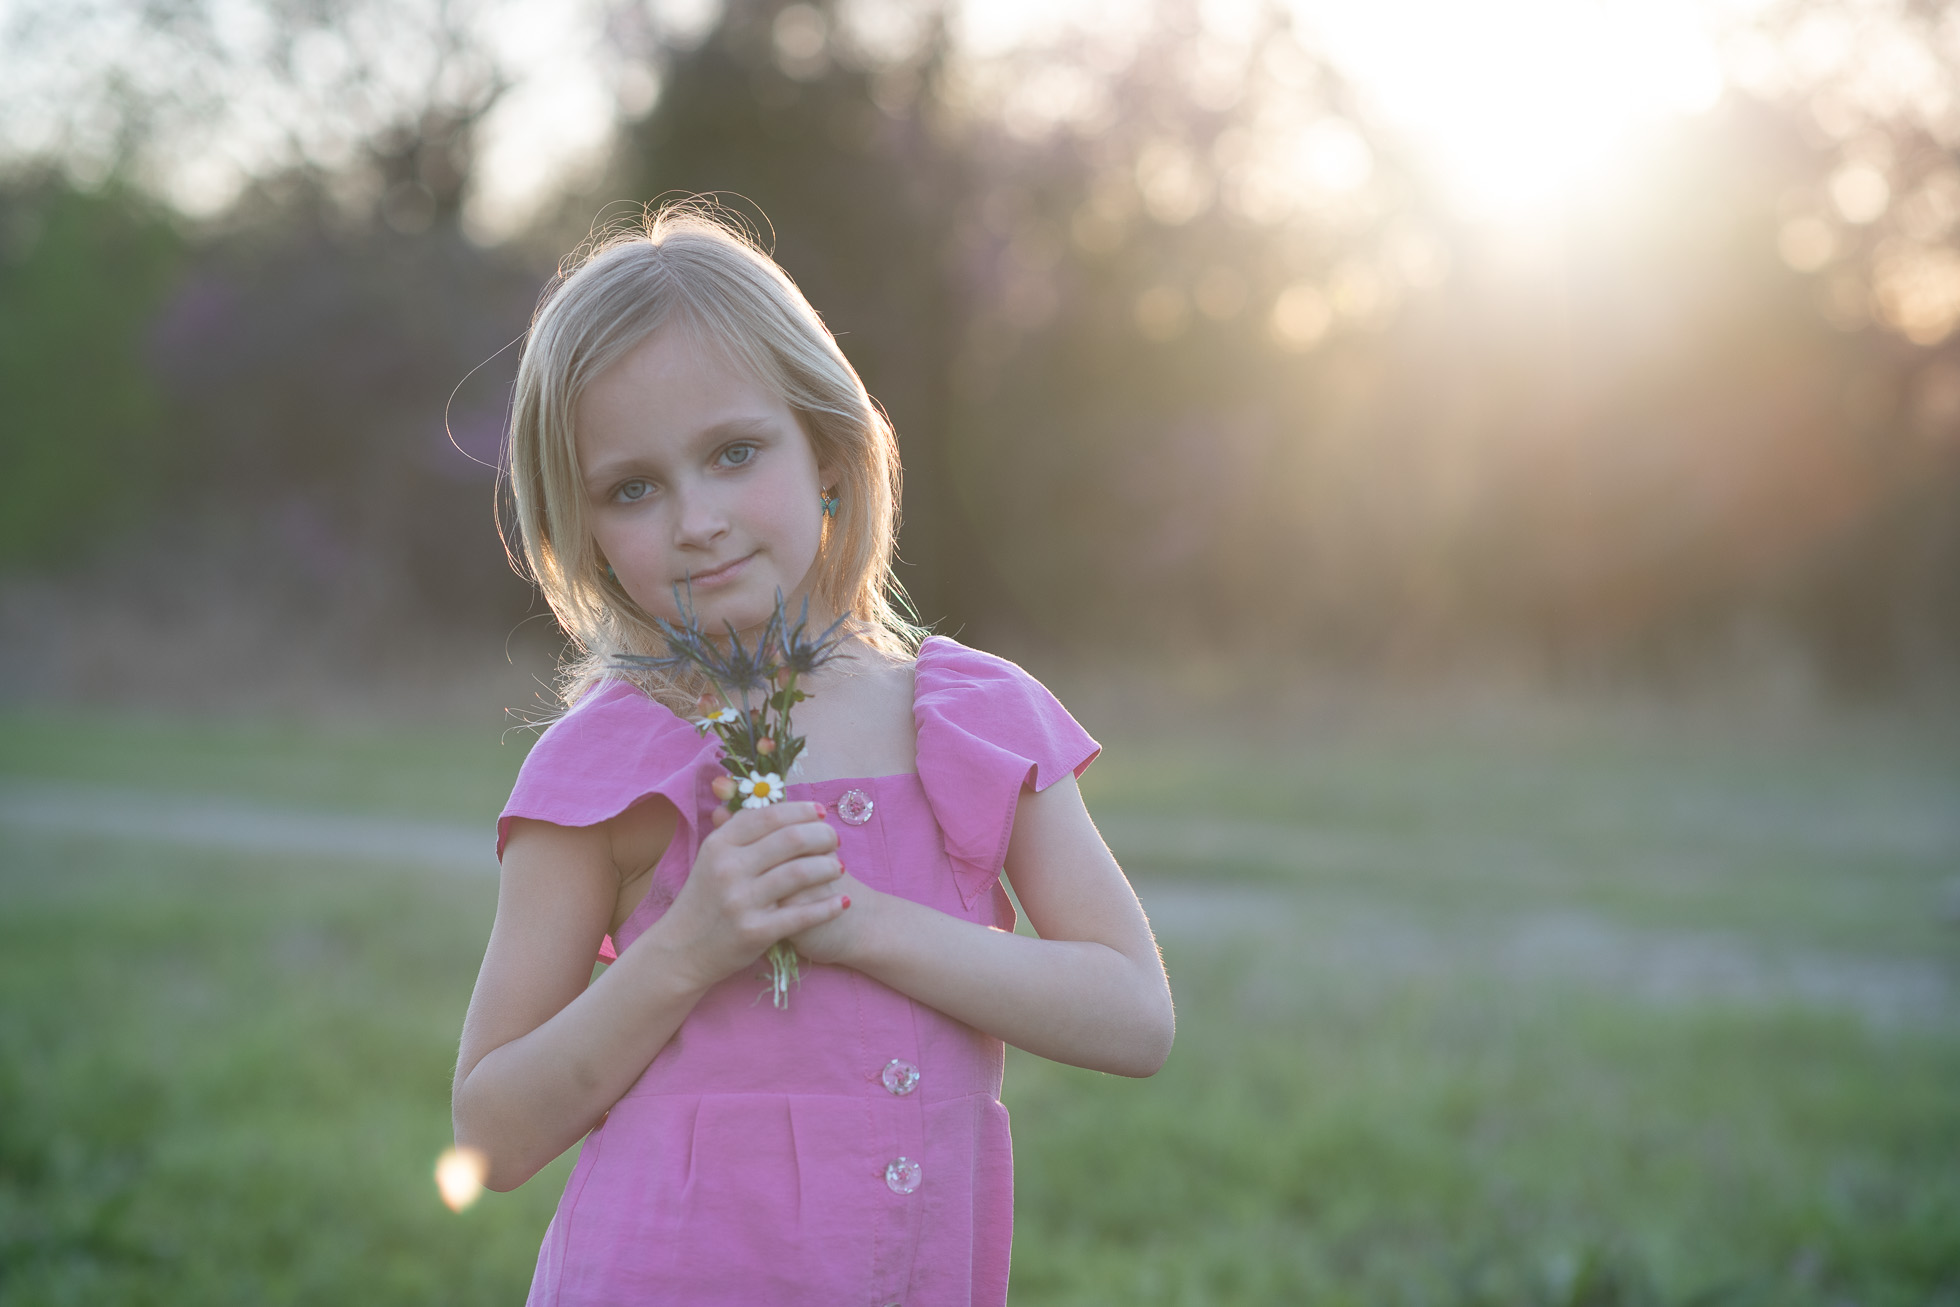 girl in pink shirt holding flowers before edit by kate luber